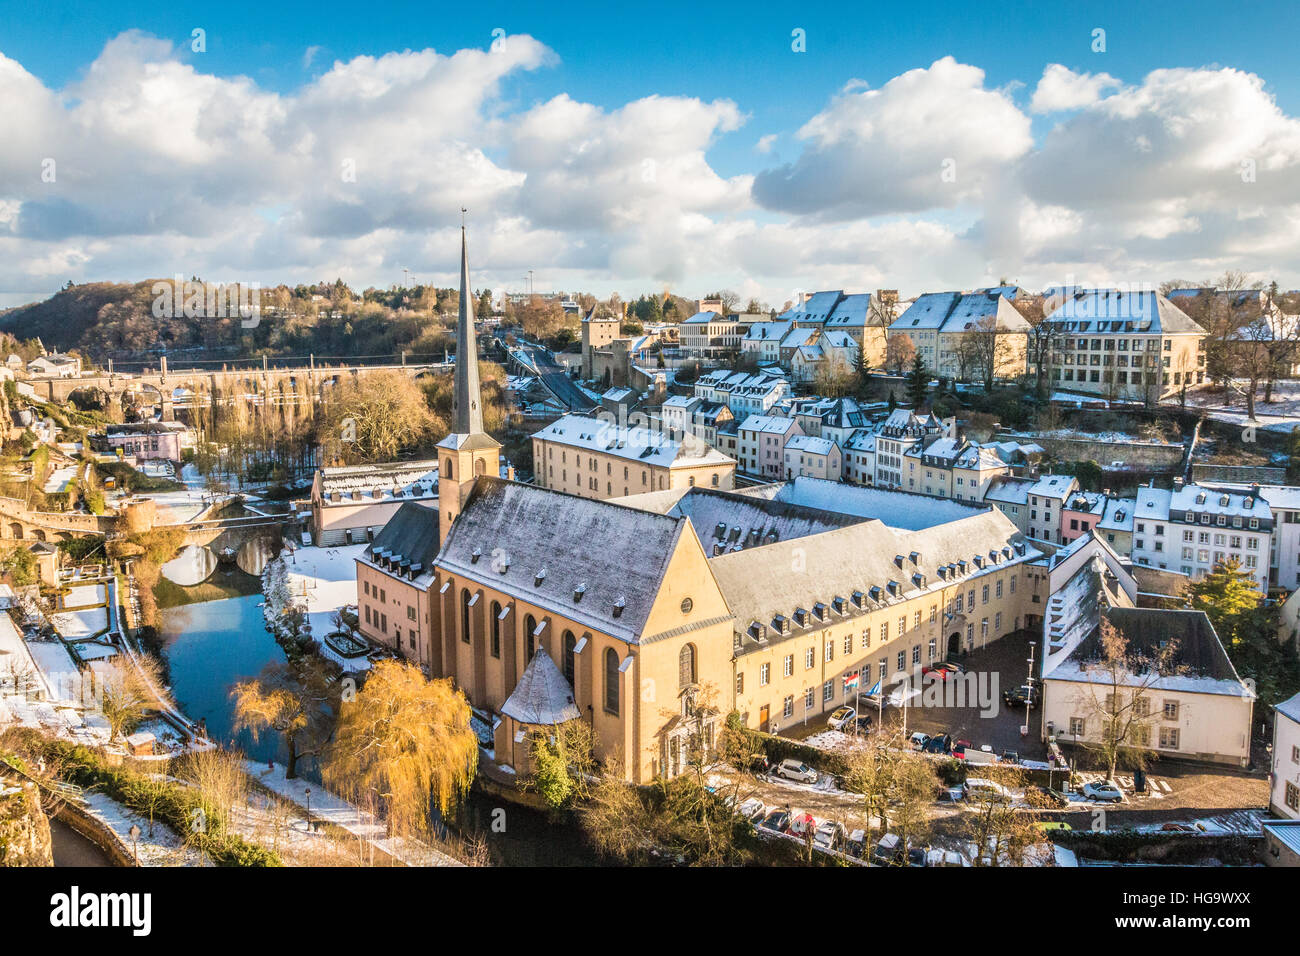 Nice snowy view of Luxembourg ville - Stock Image